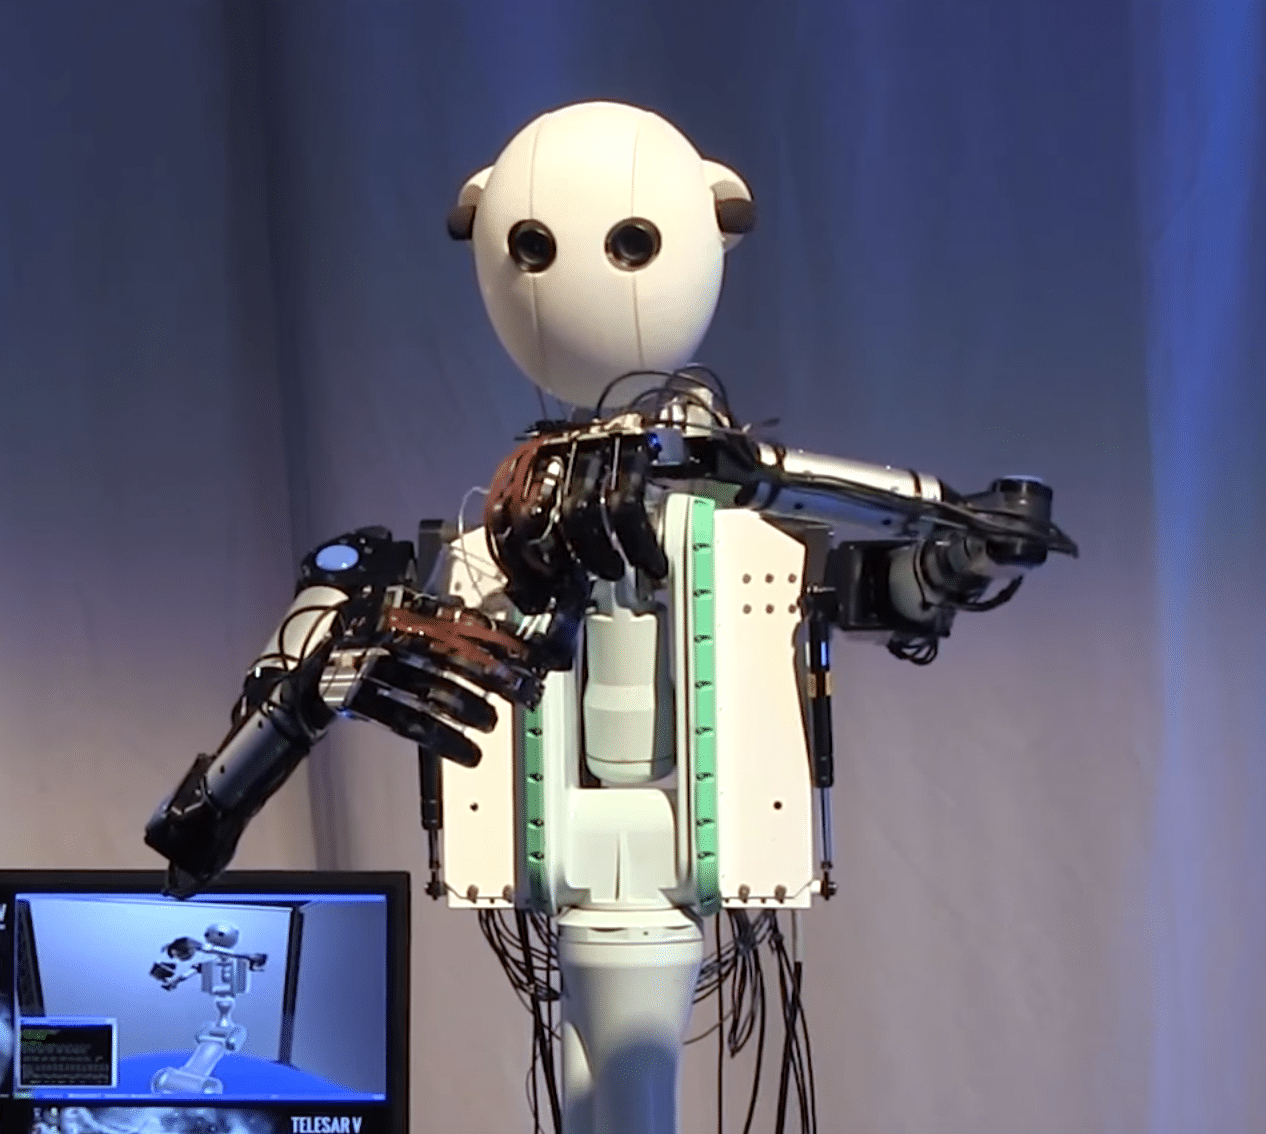 Future Trends – The Crazy Robot Edition